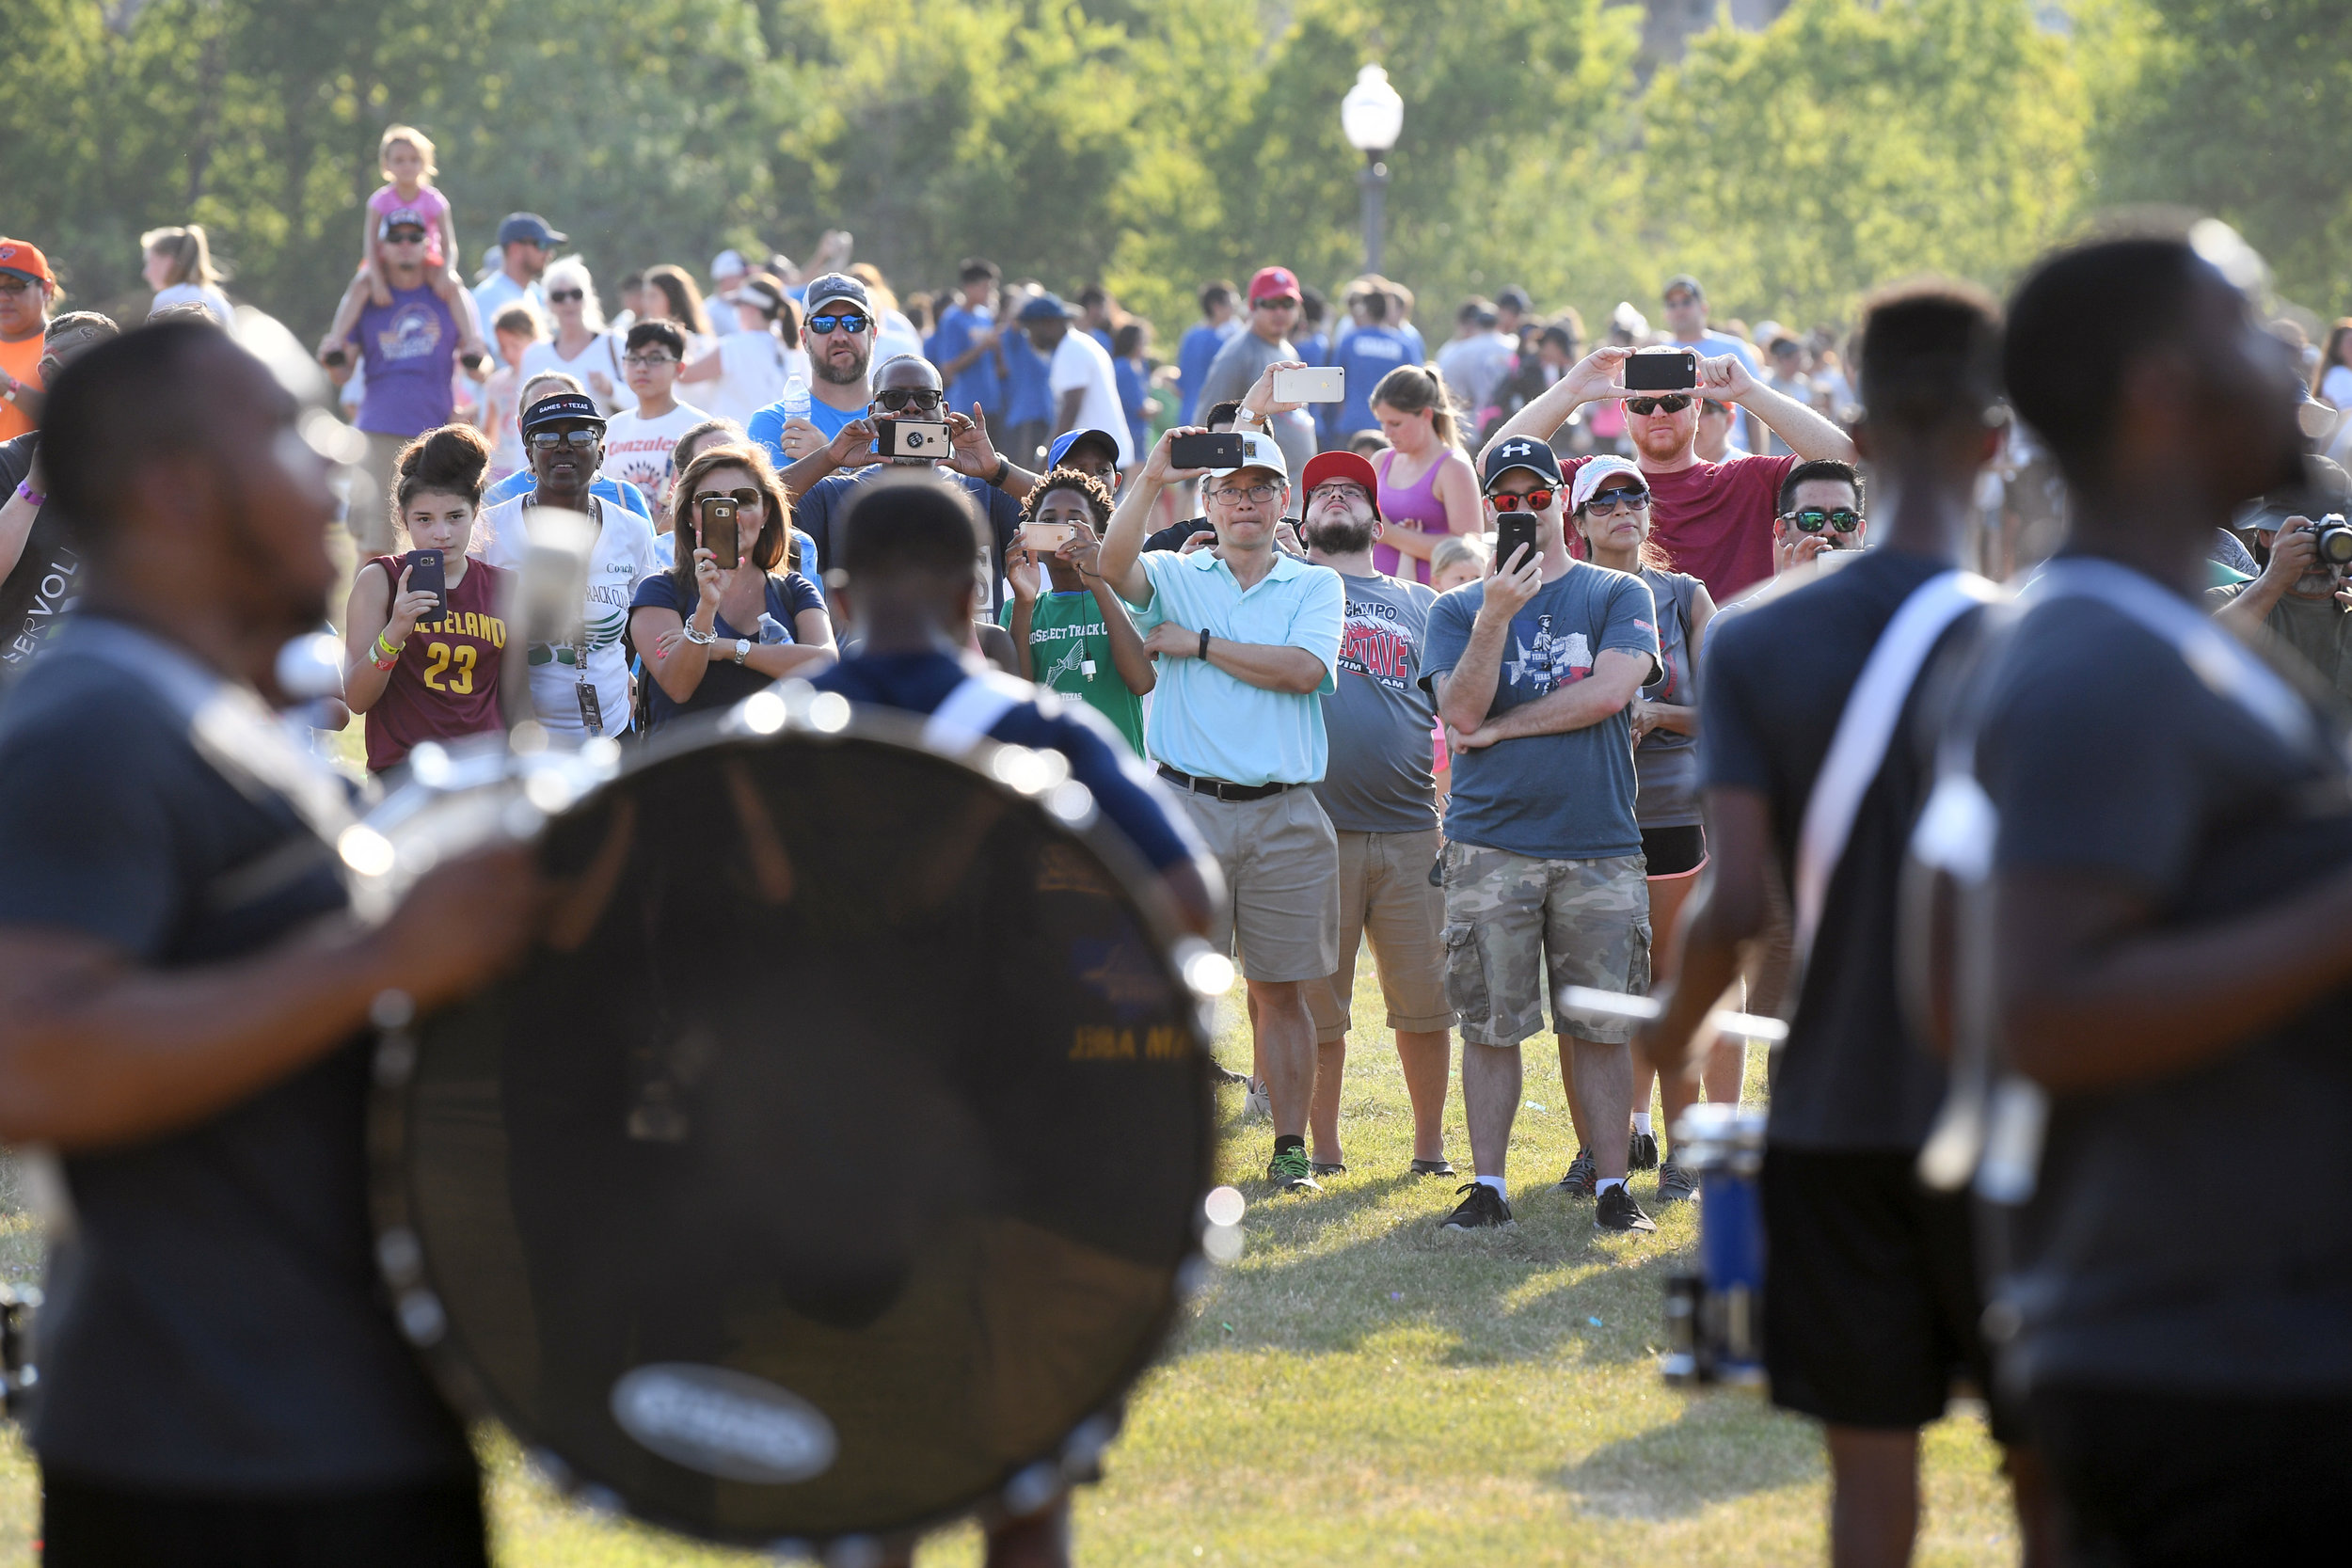 Spectators watch as the drum line from Prairie View A&M University lead athletes in a parade around Wolf Pen Creek Park during the opening ceremonies for the Games of Texas on Friday, July 27, 2018. (Laura McKenzie/The Eagle)